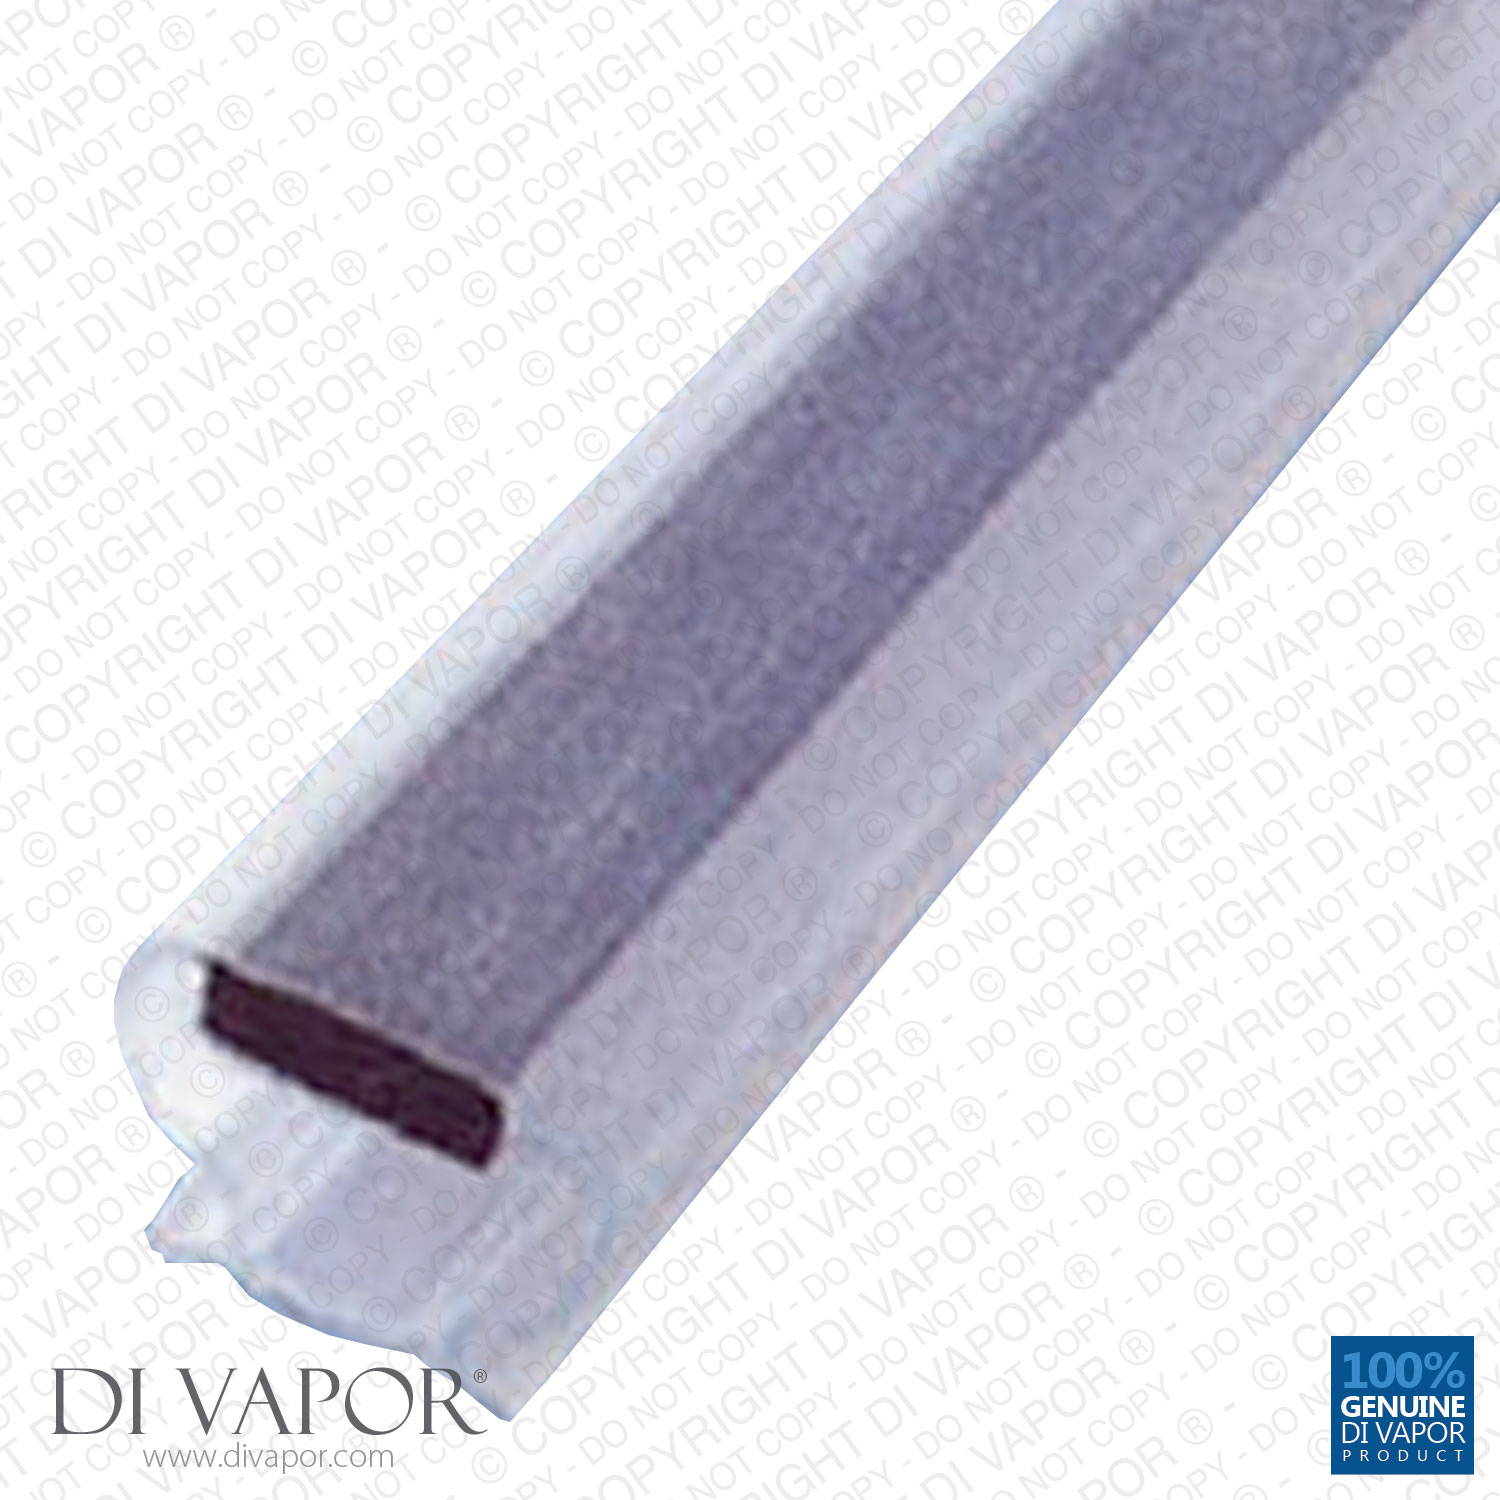 Shower T Shaped Rubber Channel Seal For Shower Screen Or Door